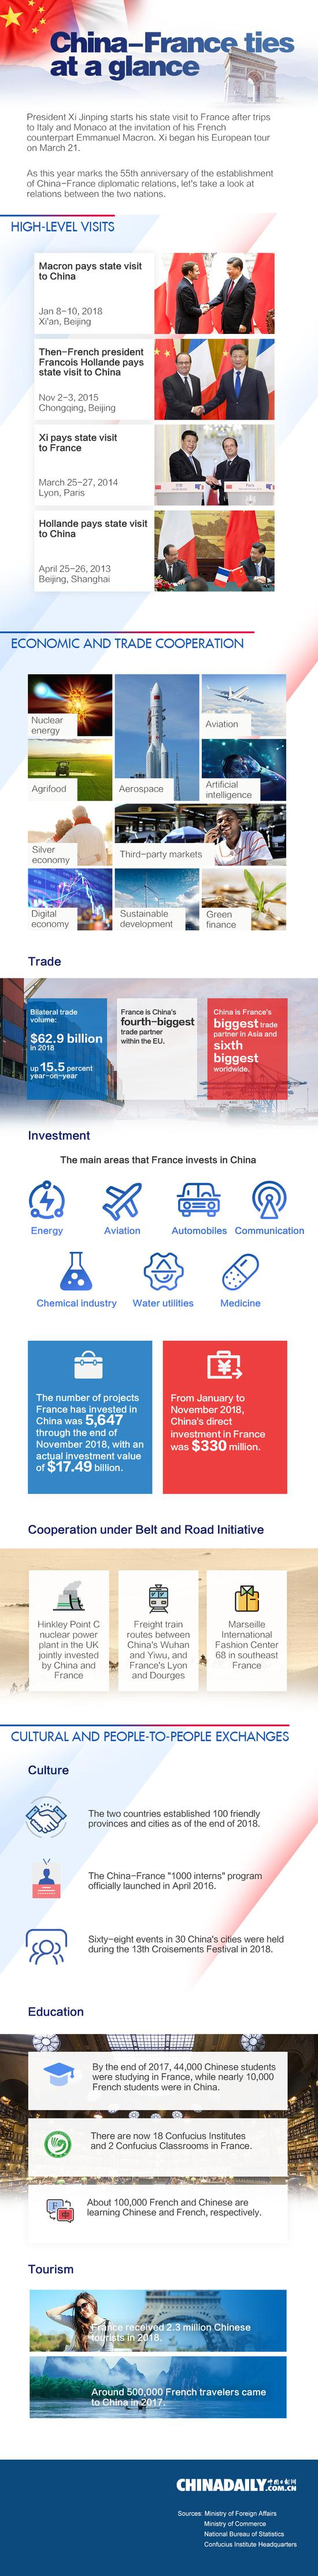 What you need to know about China-France relations